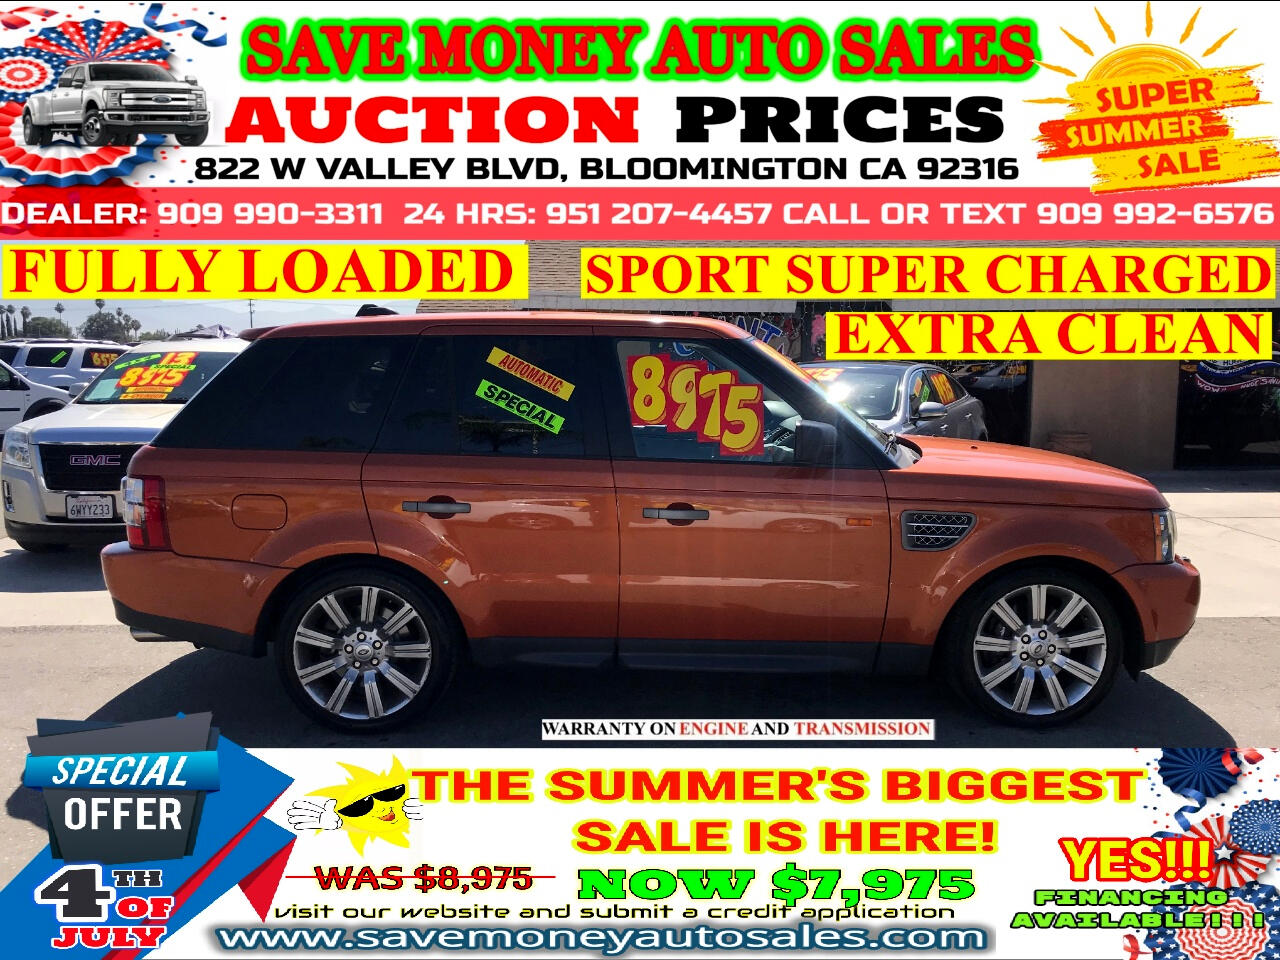 2006 Land Rover Range Rover Sport SUPERCHARGED> FULLY LOADED> LOW MILES> EXTRA CLEAN